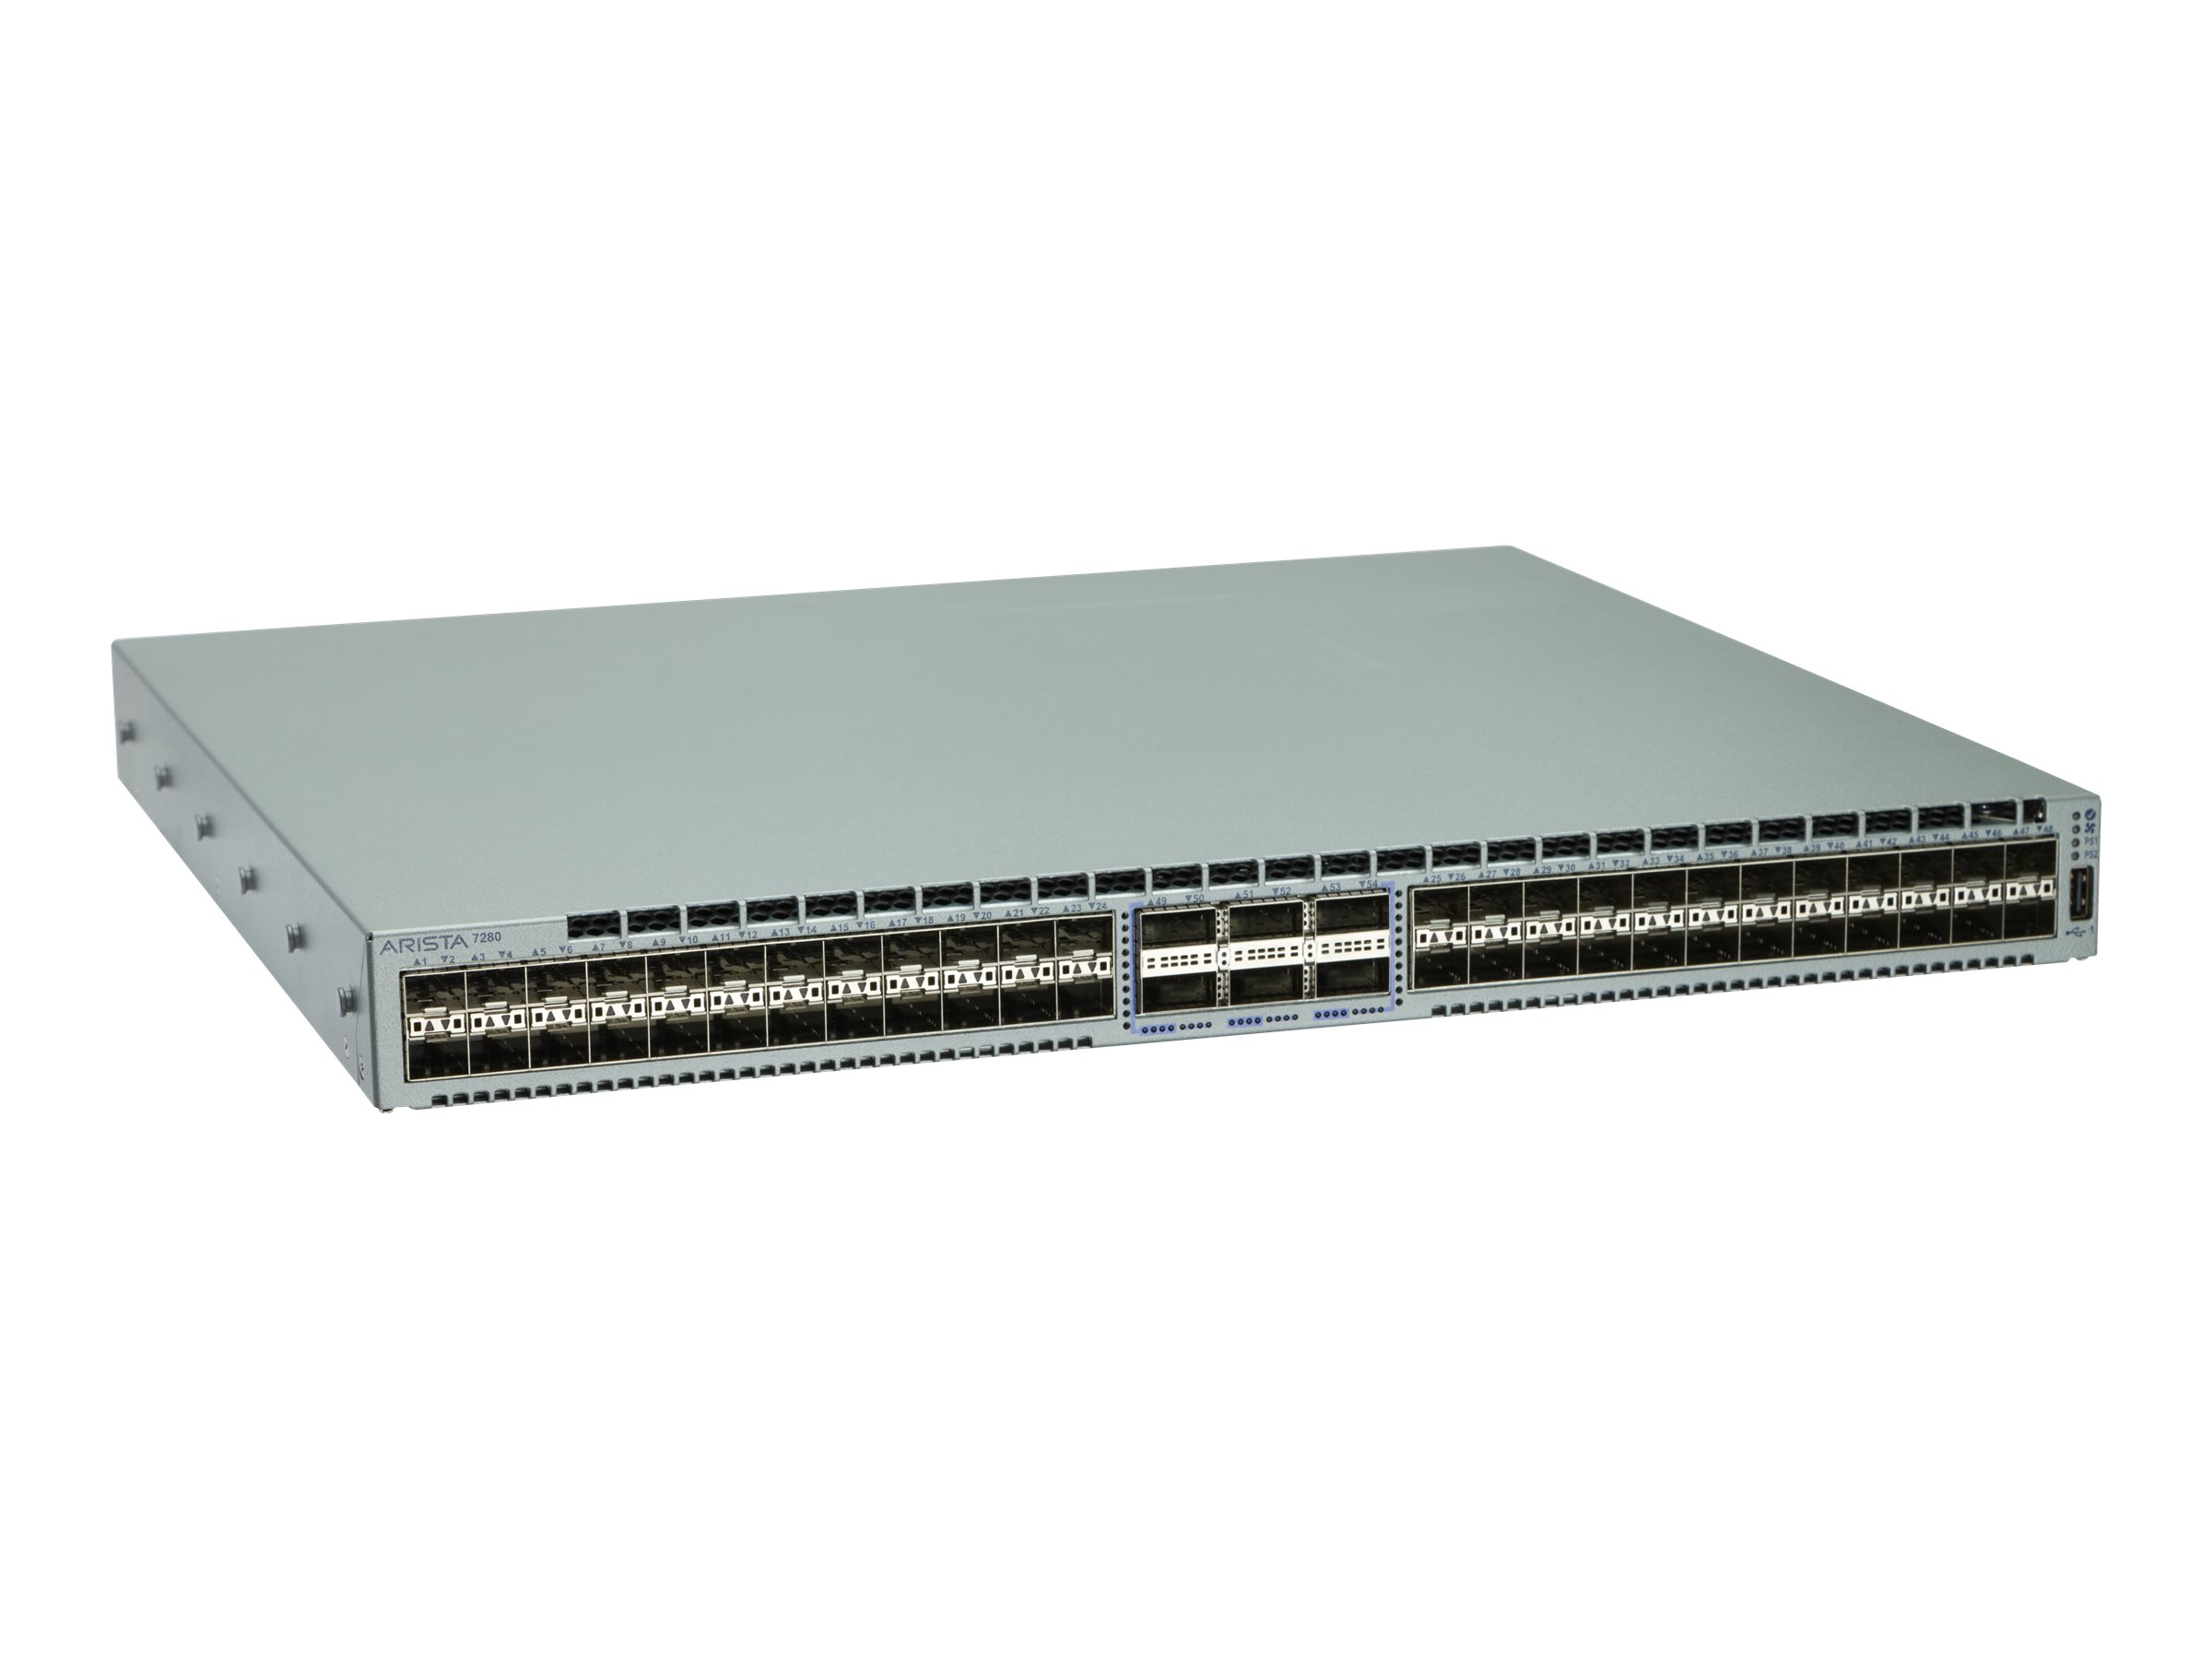 Arista 7280SR2-48YC6 - switch - 48 ports - managed - rack-mountable